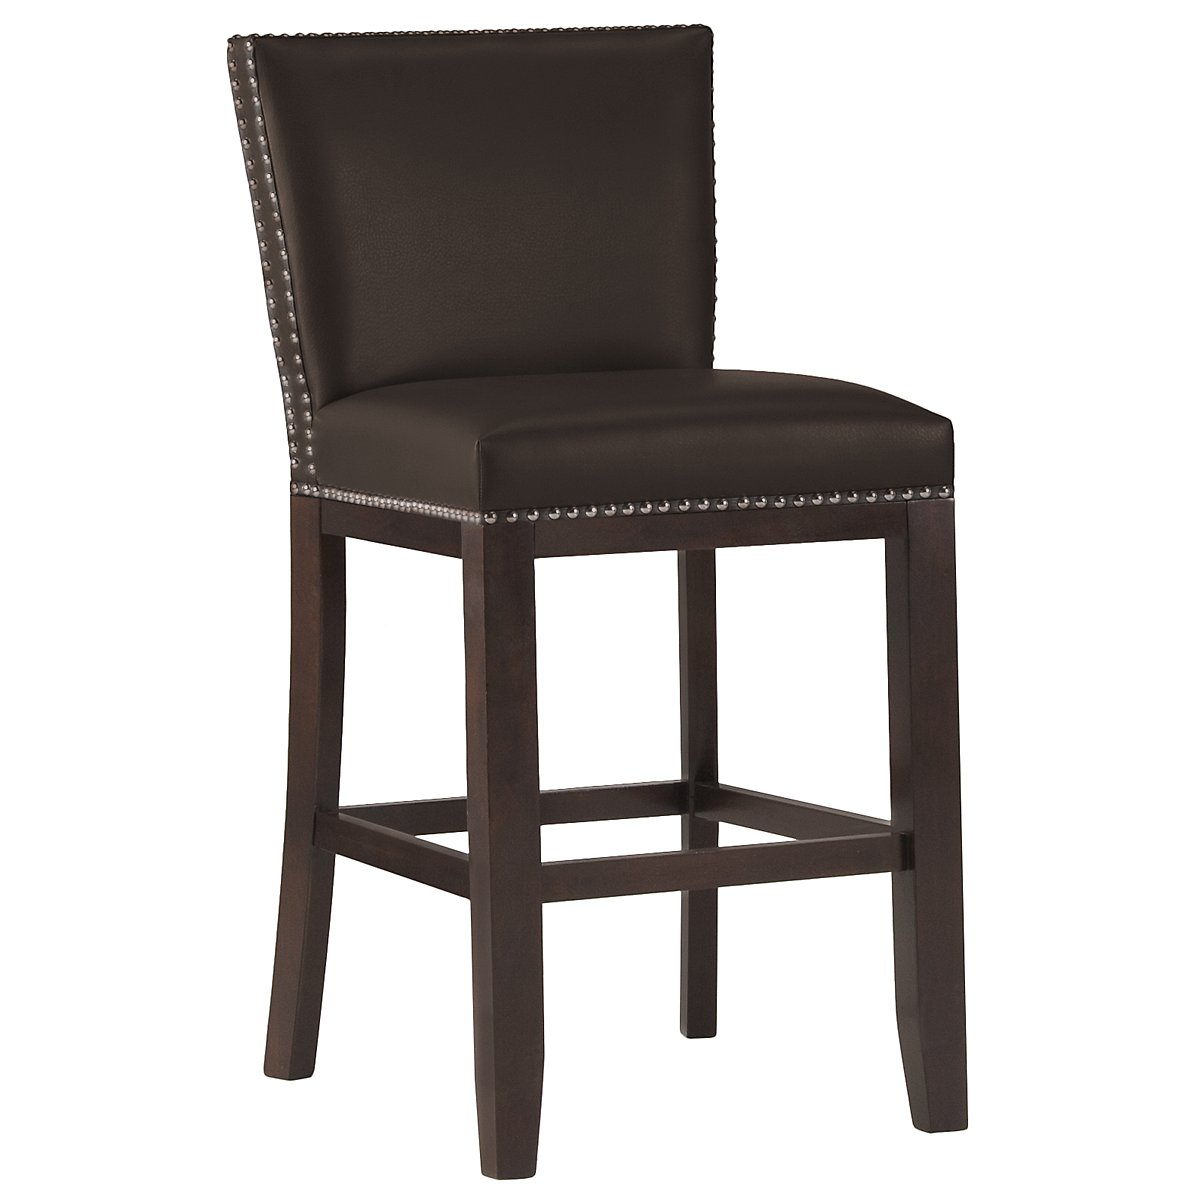 "Tiffany Dark Brown 24"" Bonded Leather Barstool"